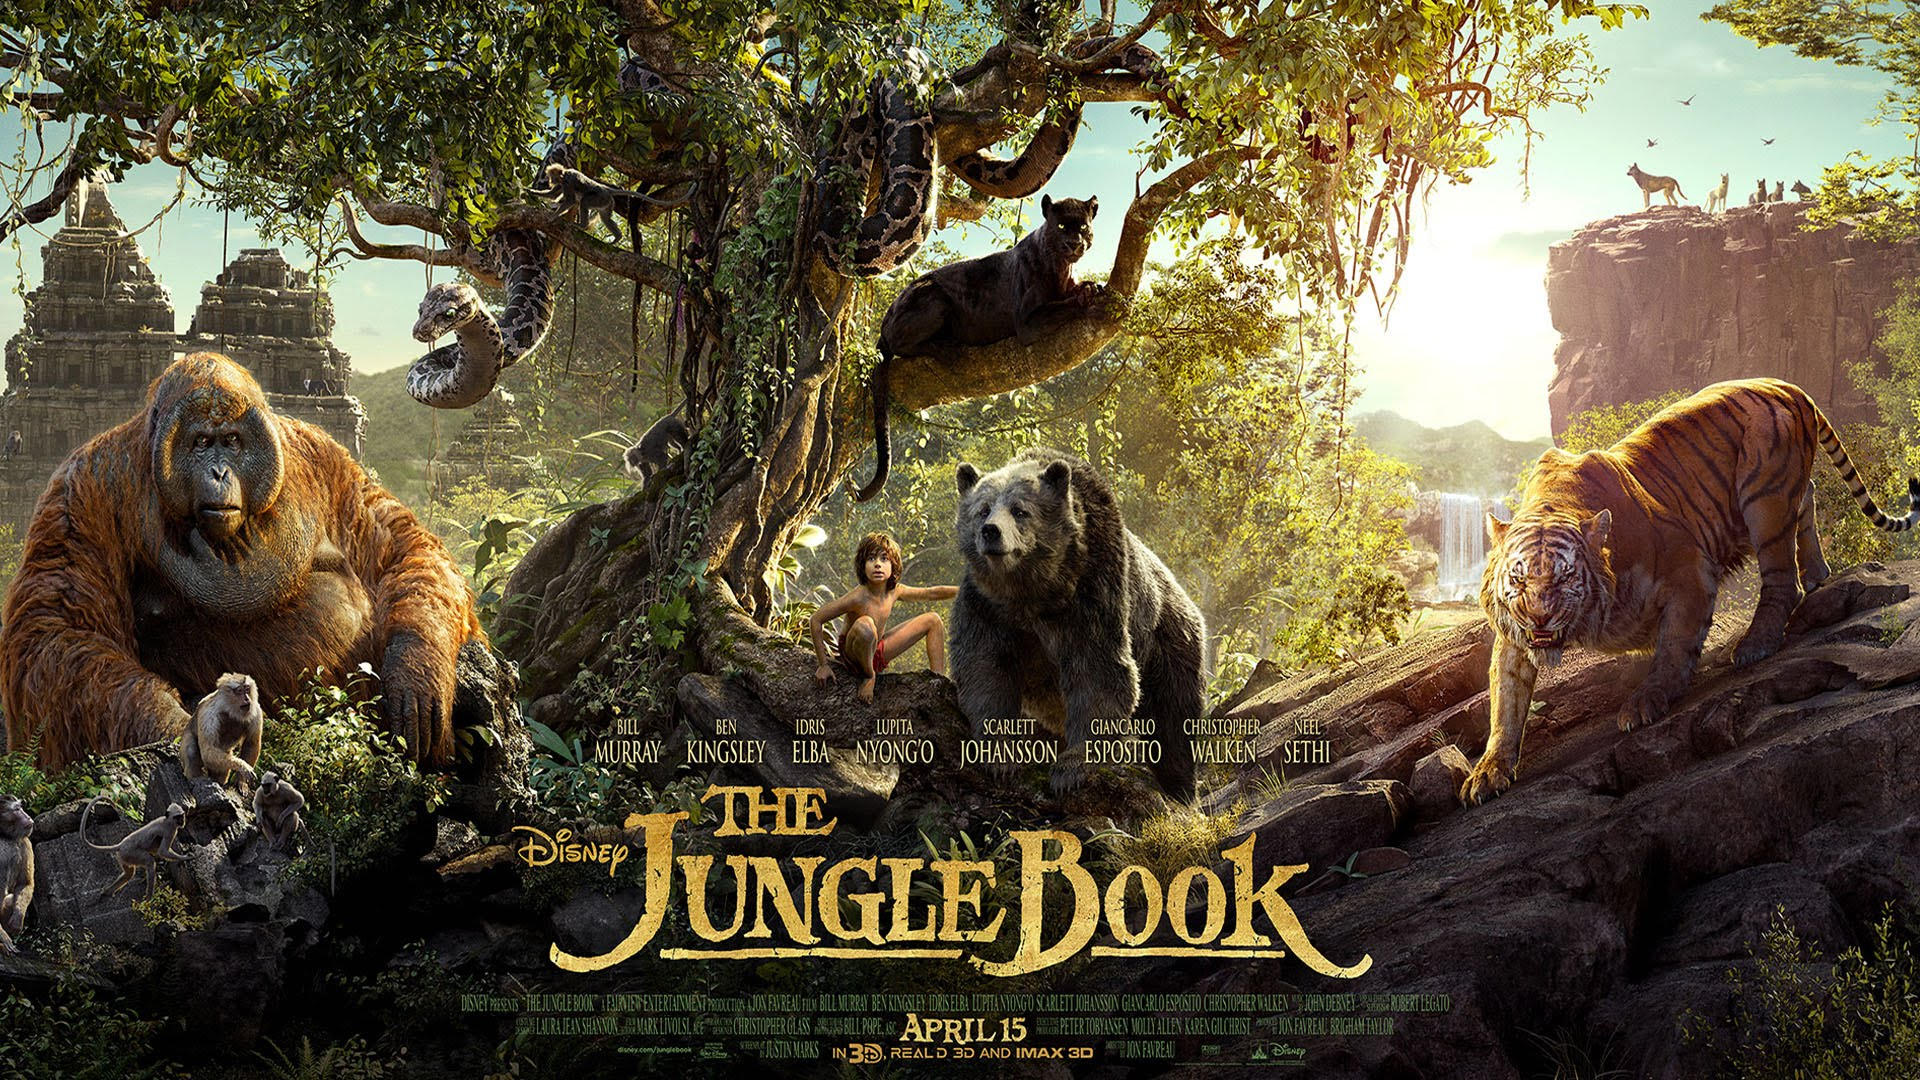 The Jungle Book movie poster (short film and movie news)